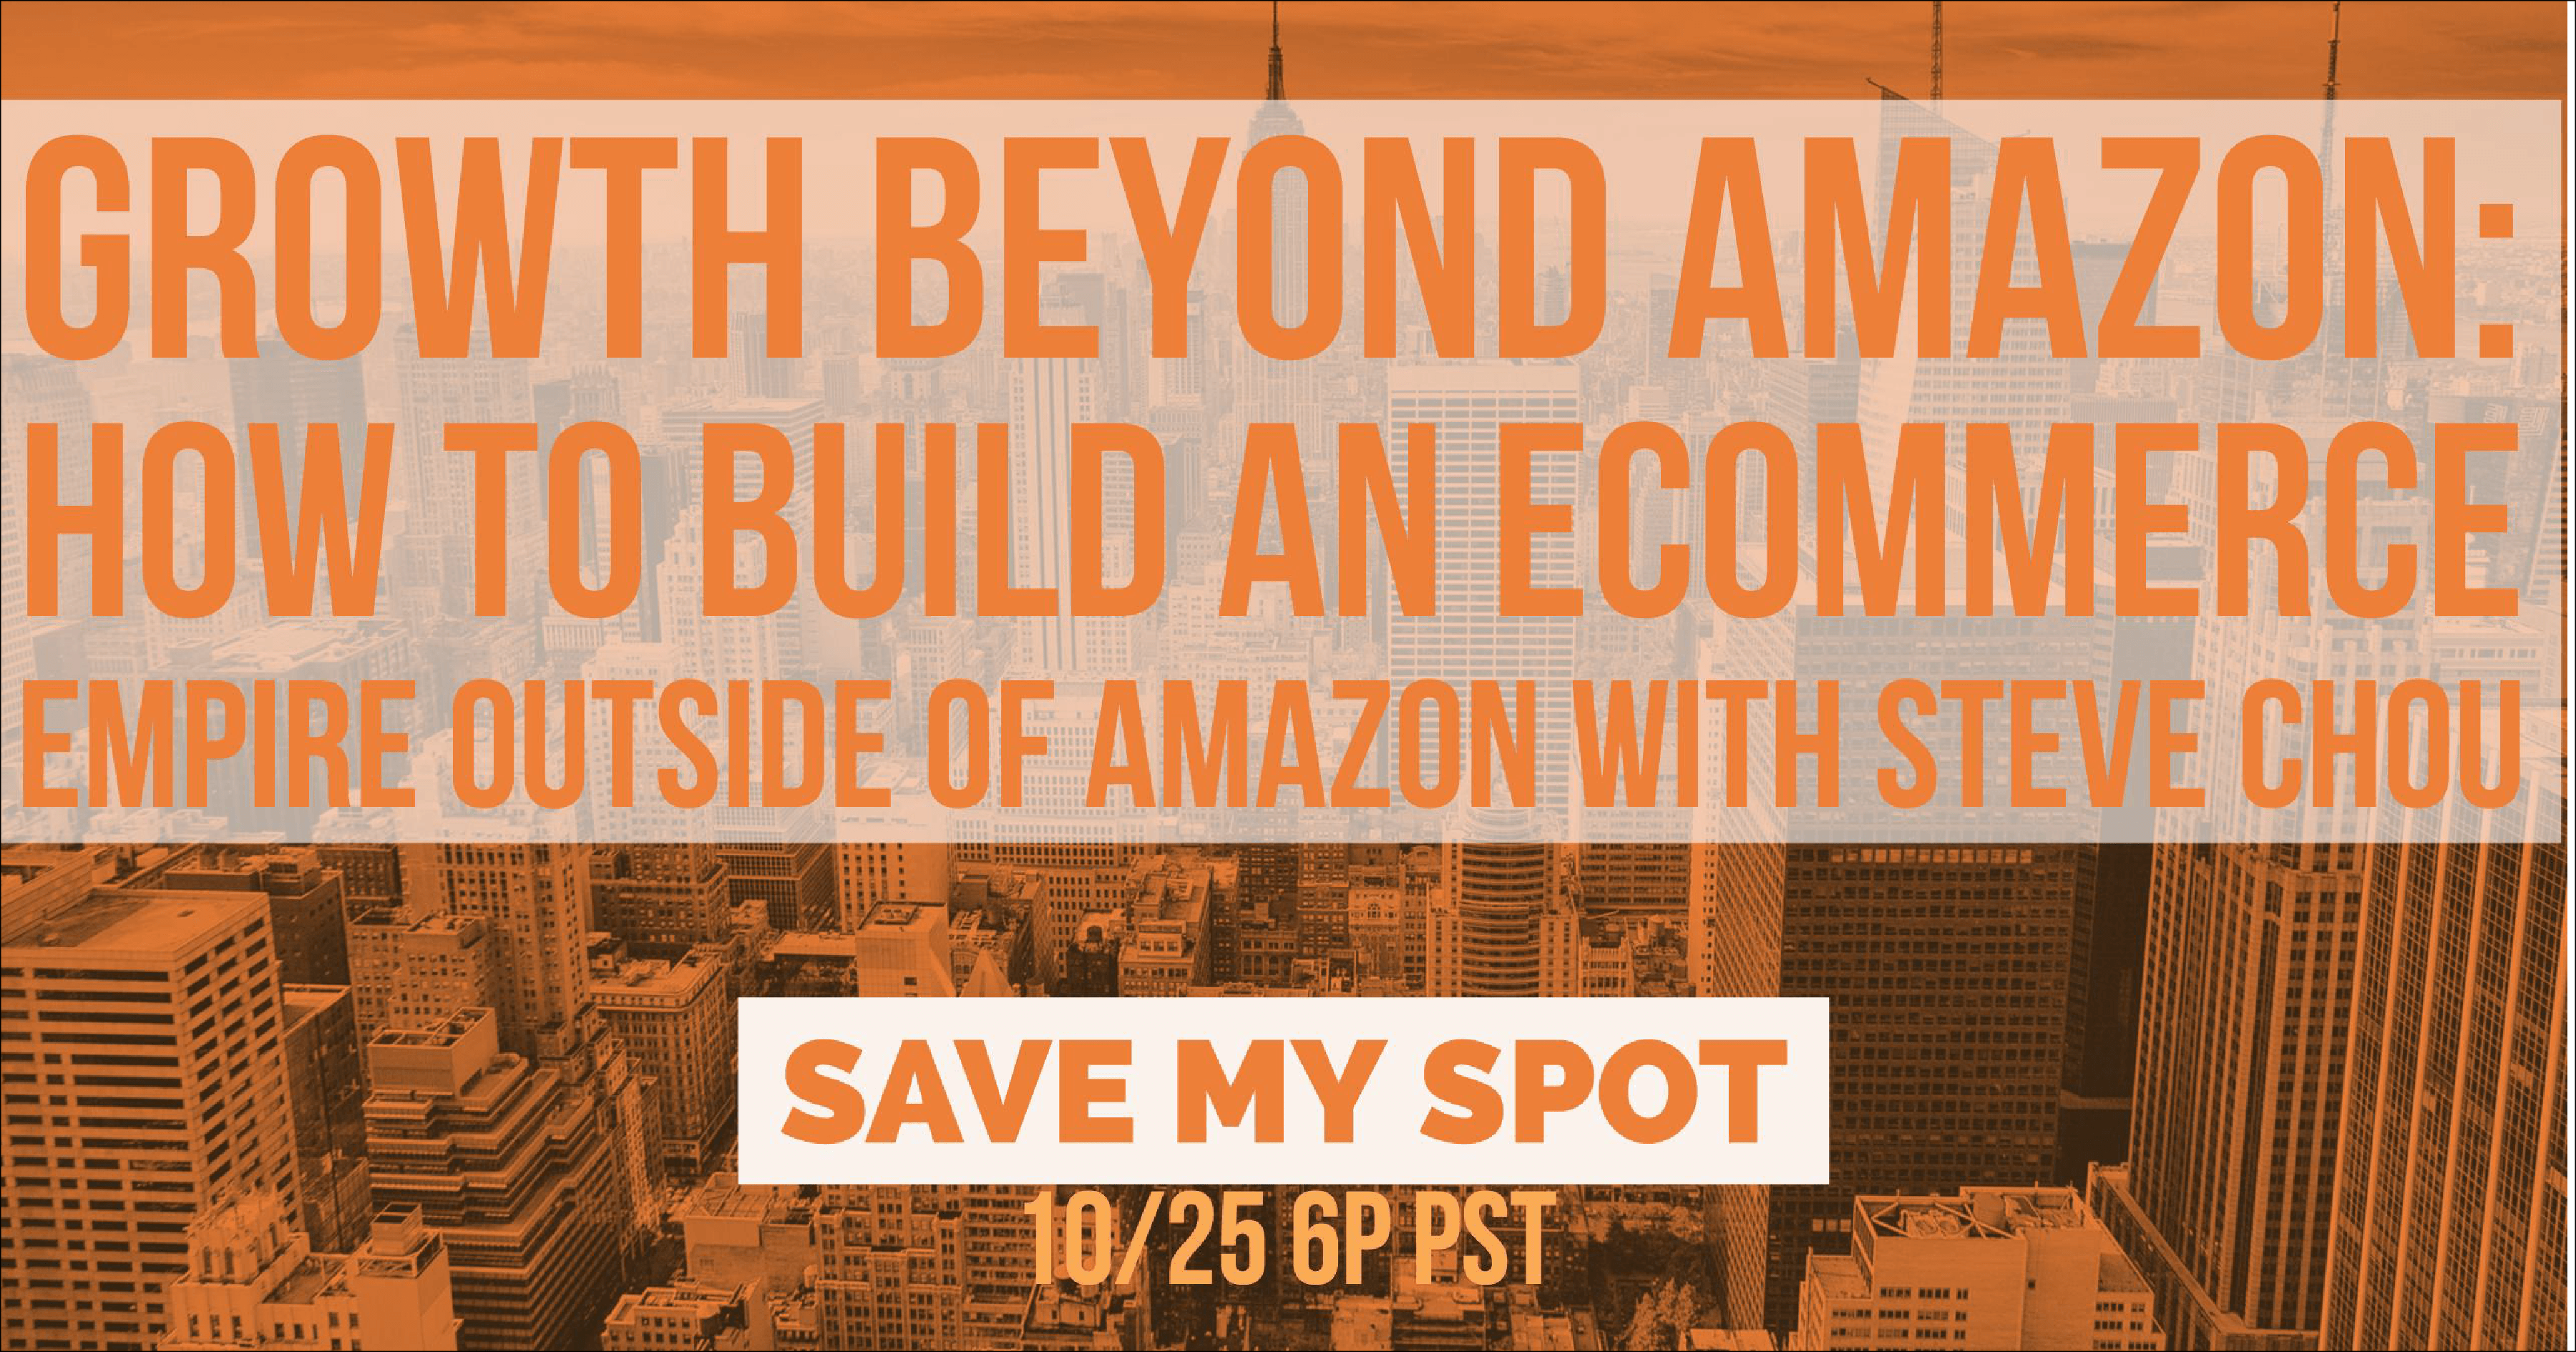 Growth Beyond Amazon: How To Build a Profitable Online Store